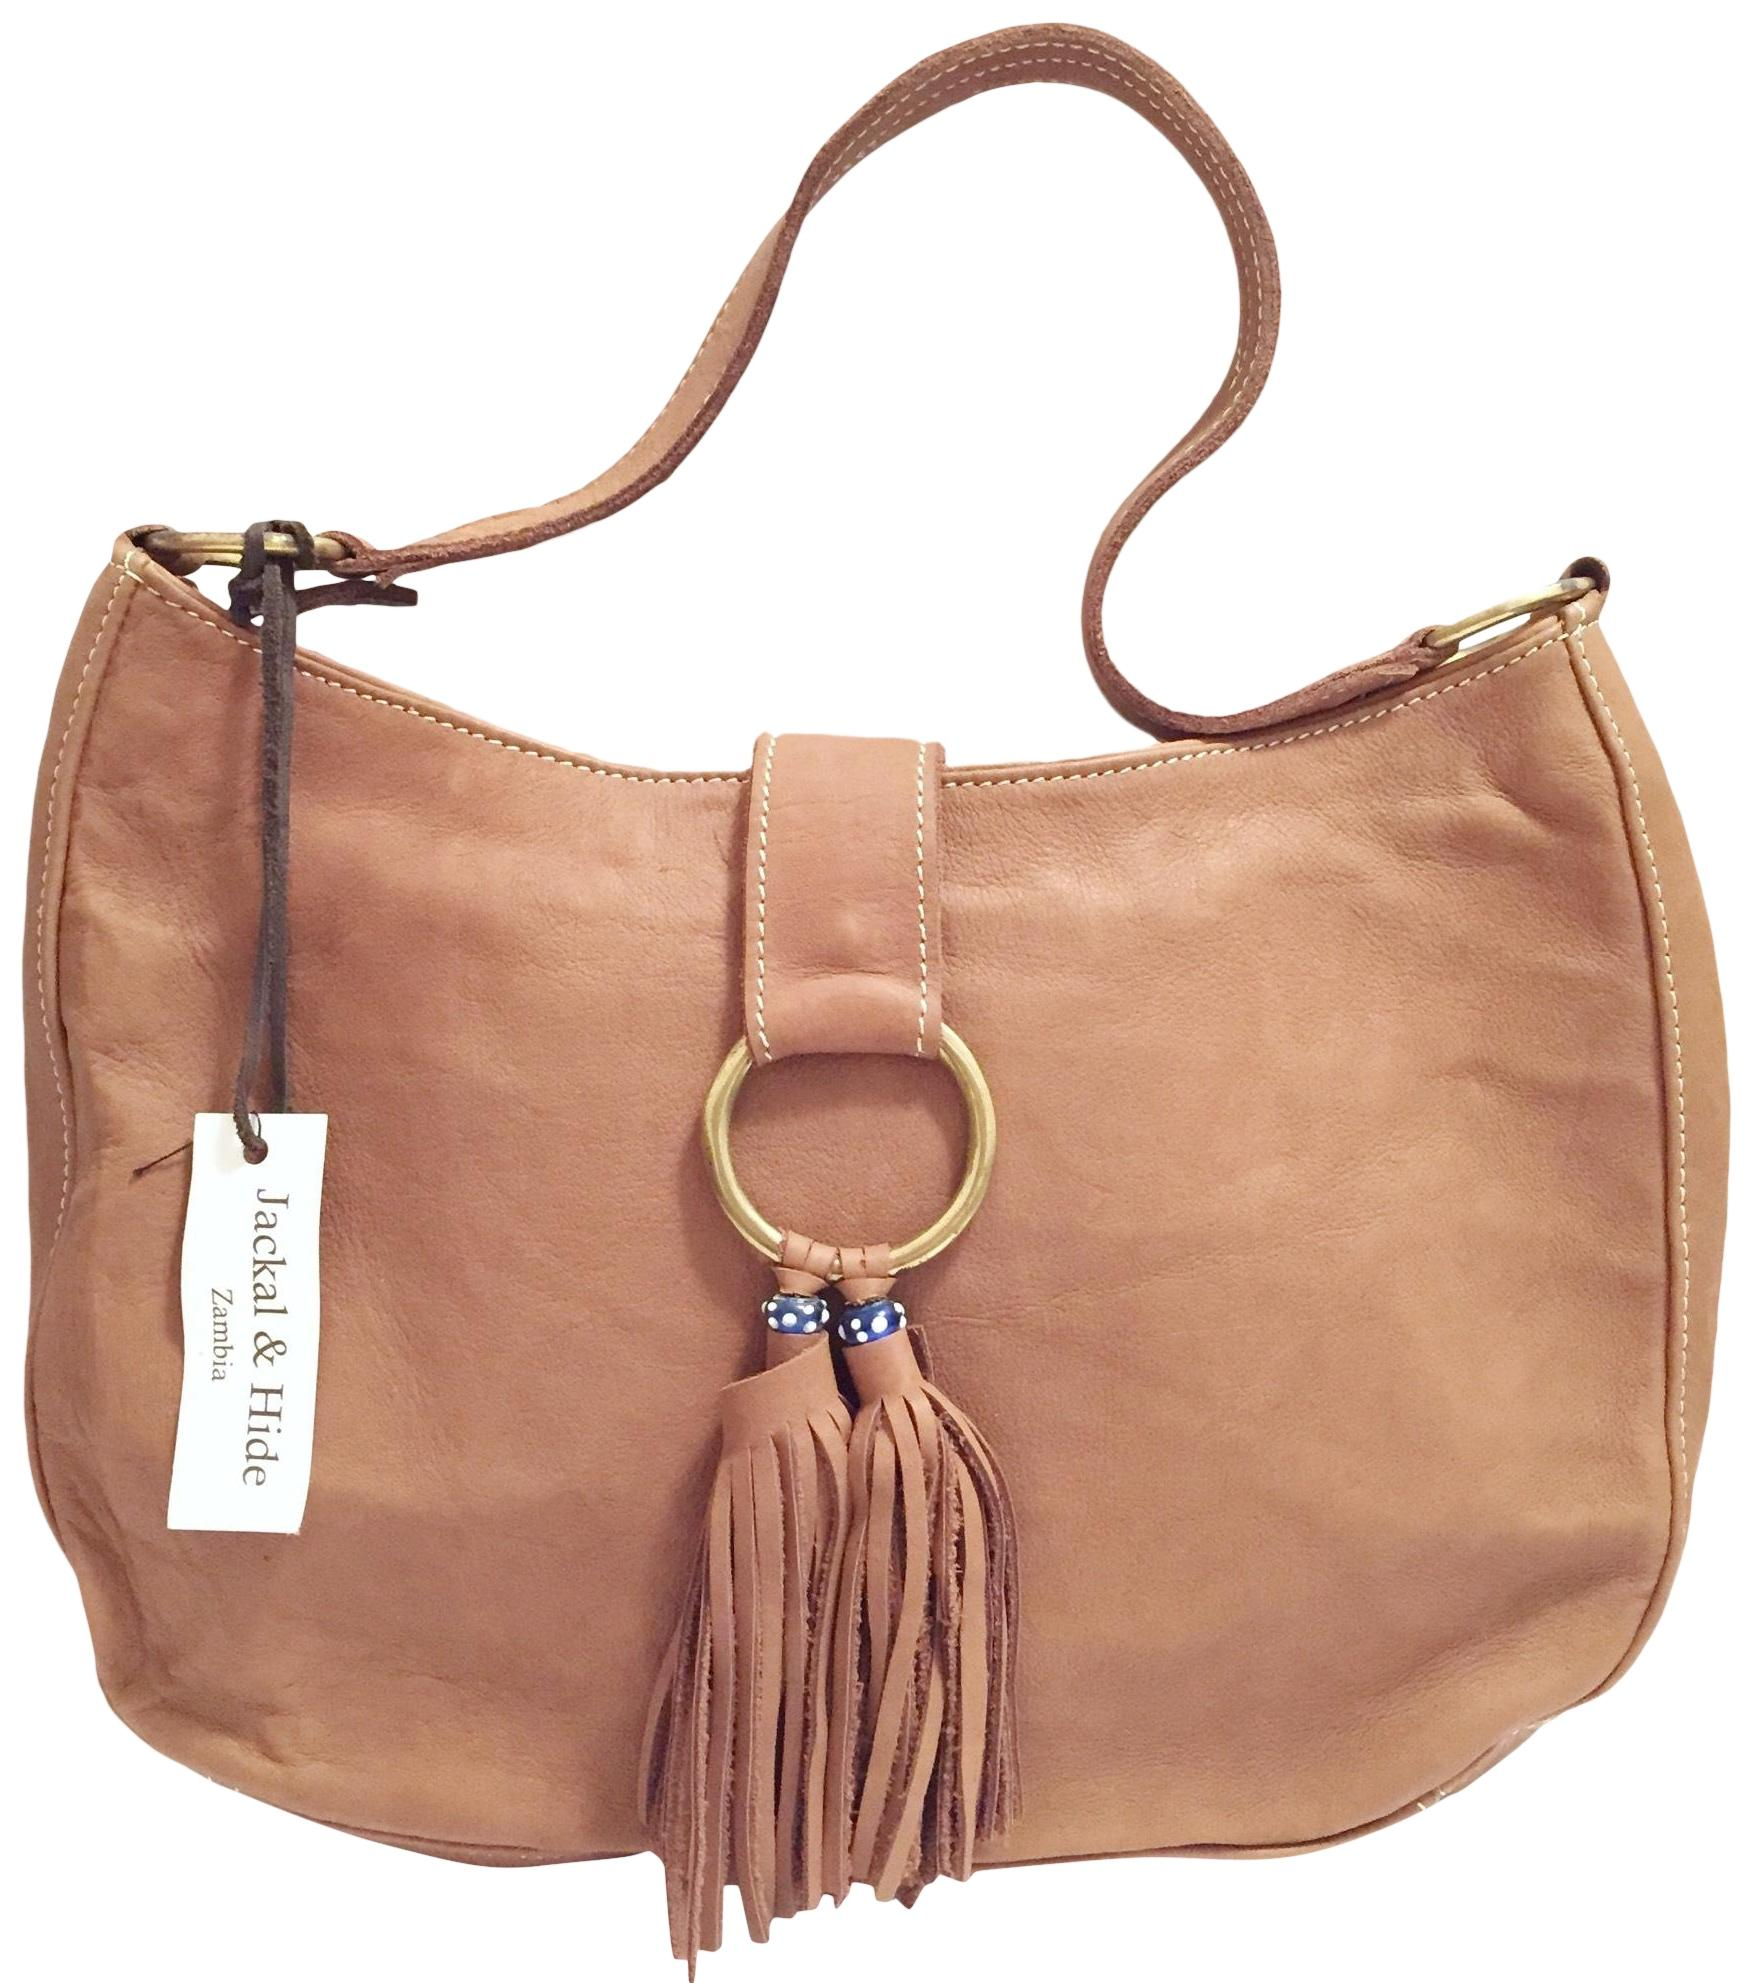 53278d47a1 Jackal hide zambia handmade handbag brown leather hobo bag tradesy jpg  848x960 Handmade leather hobo